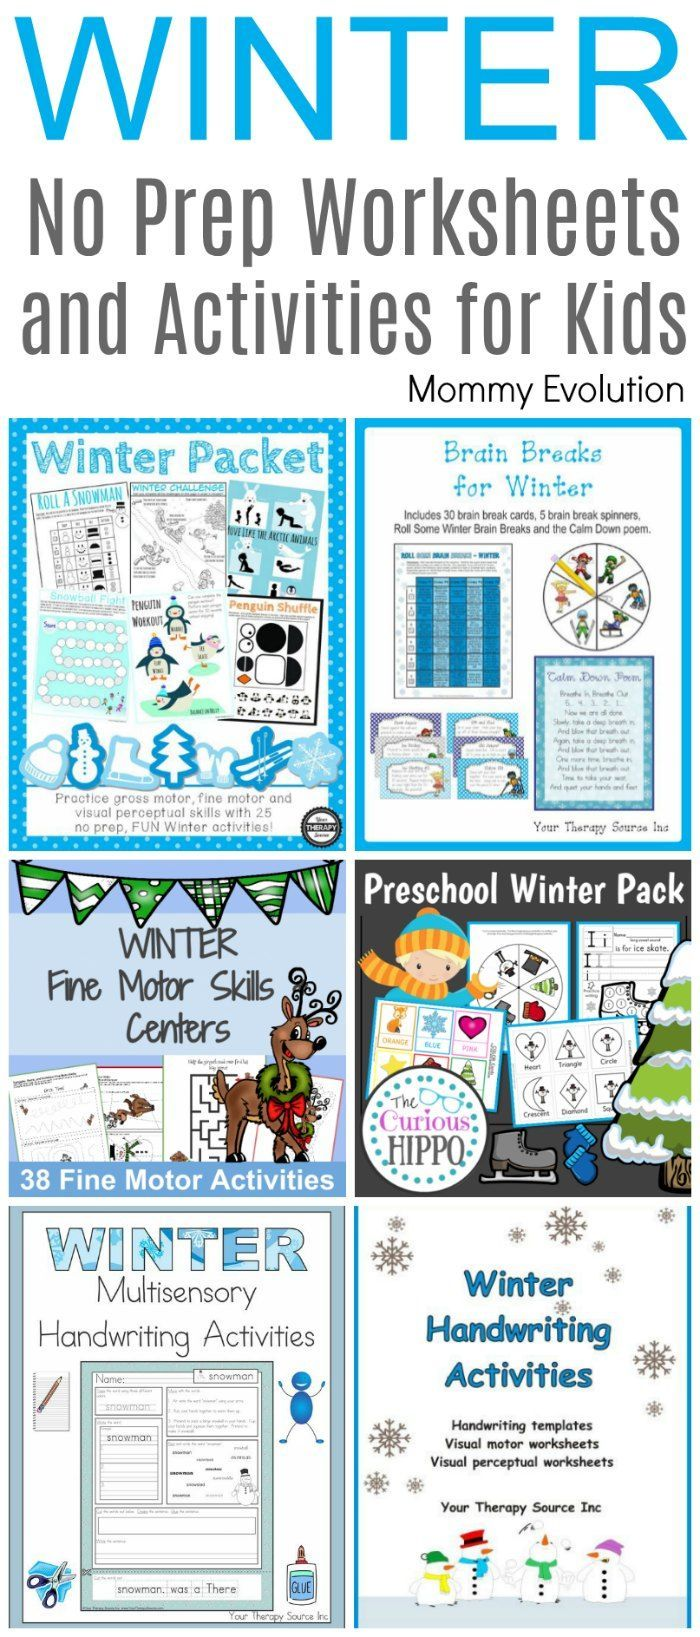 No Prep Winter Worksheets and Activities | School classroom ...